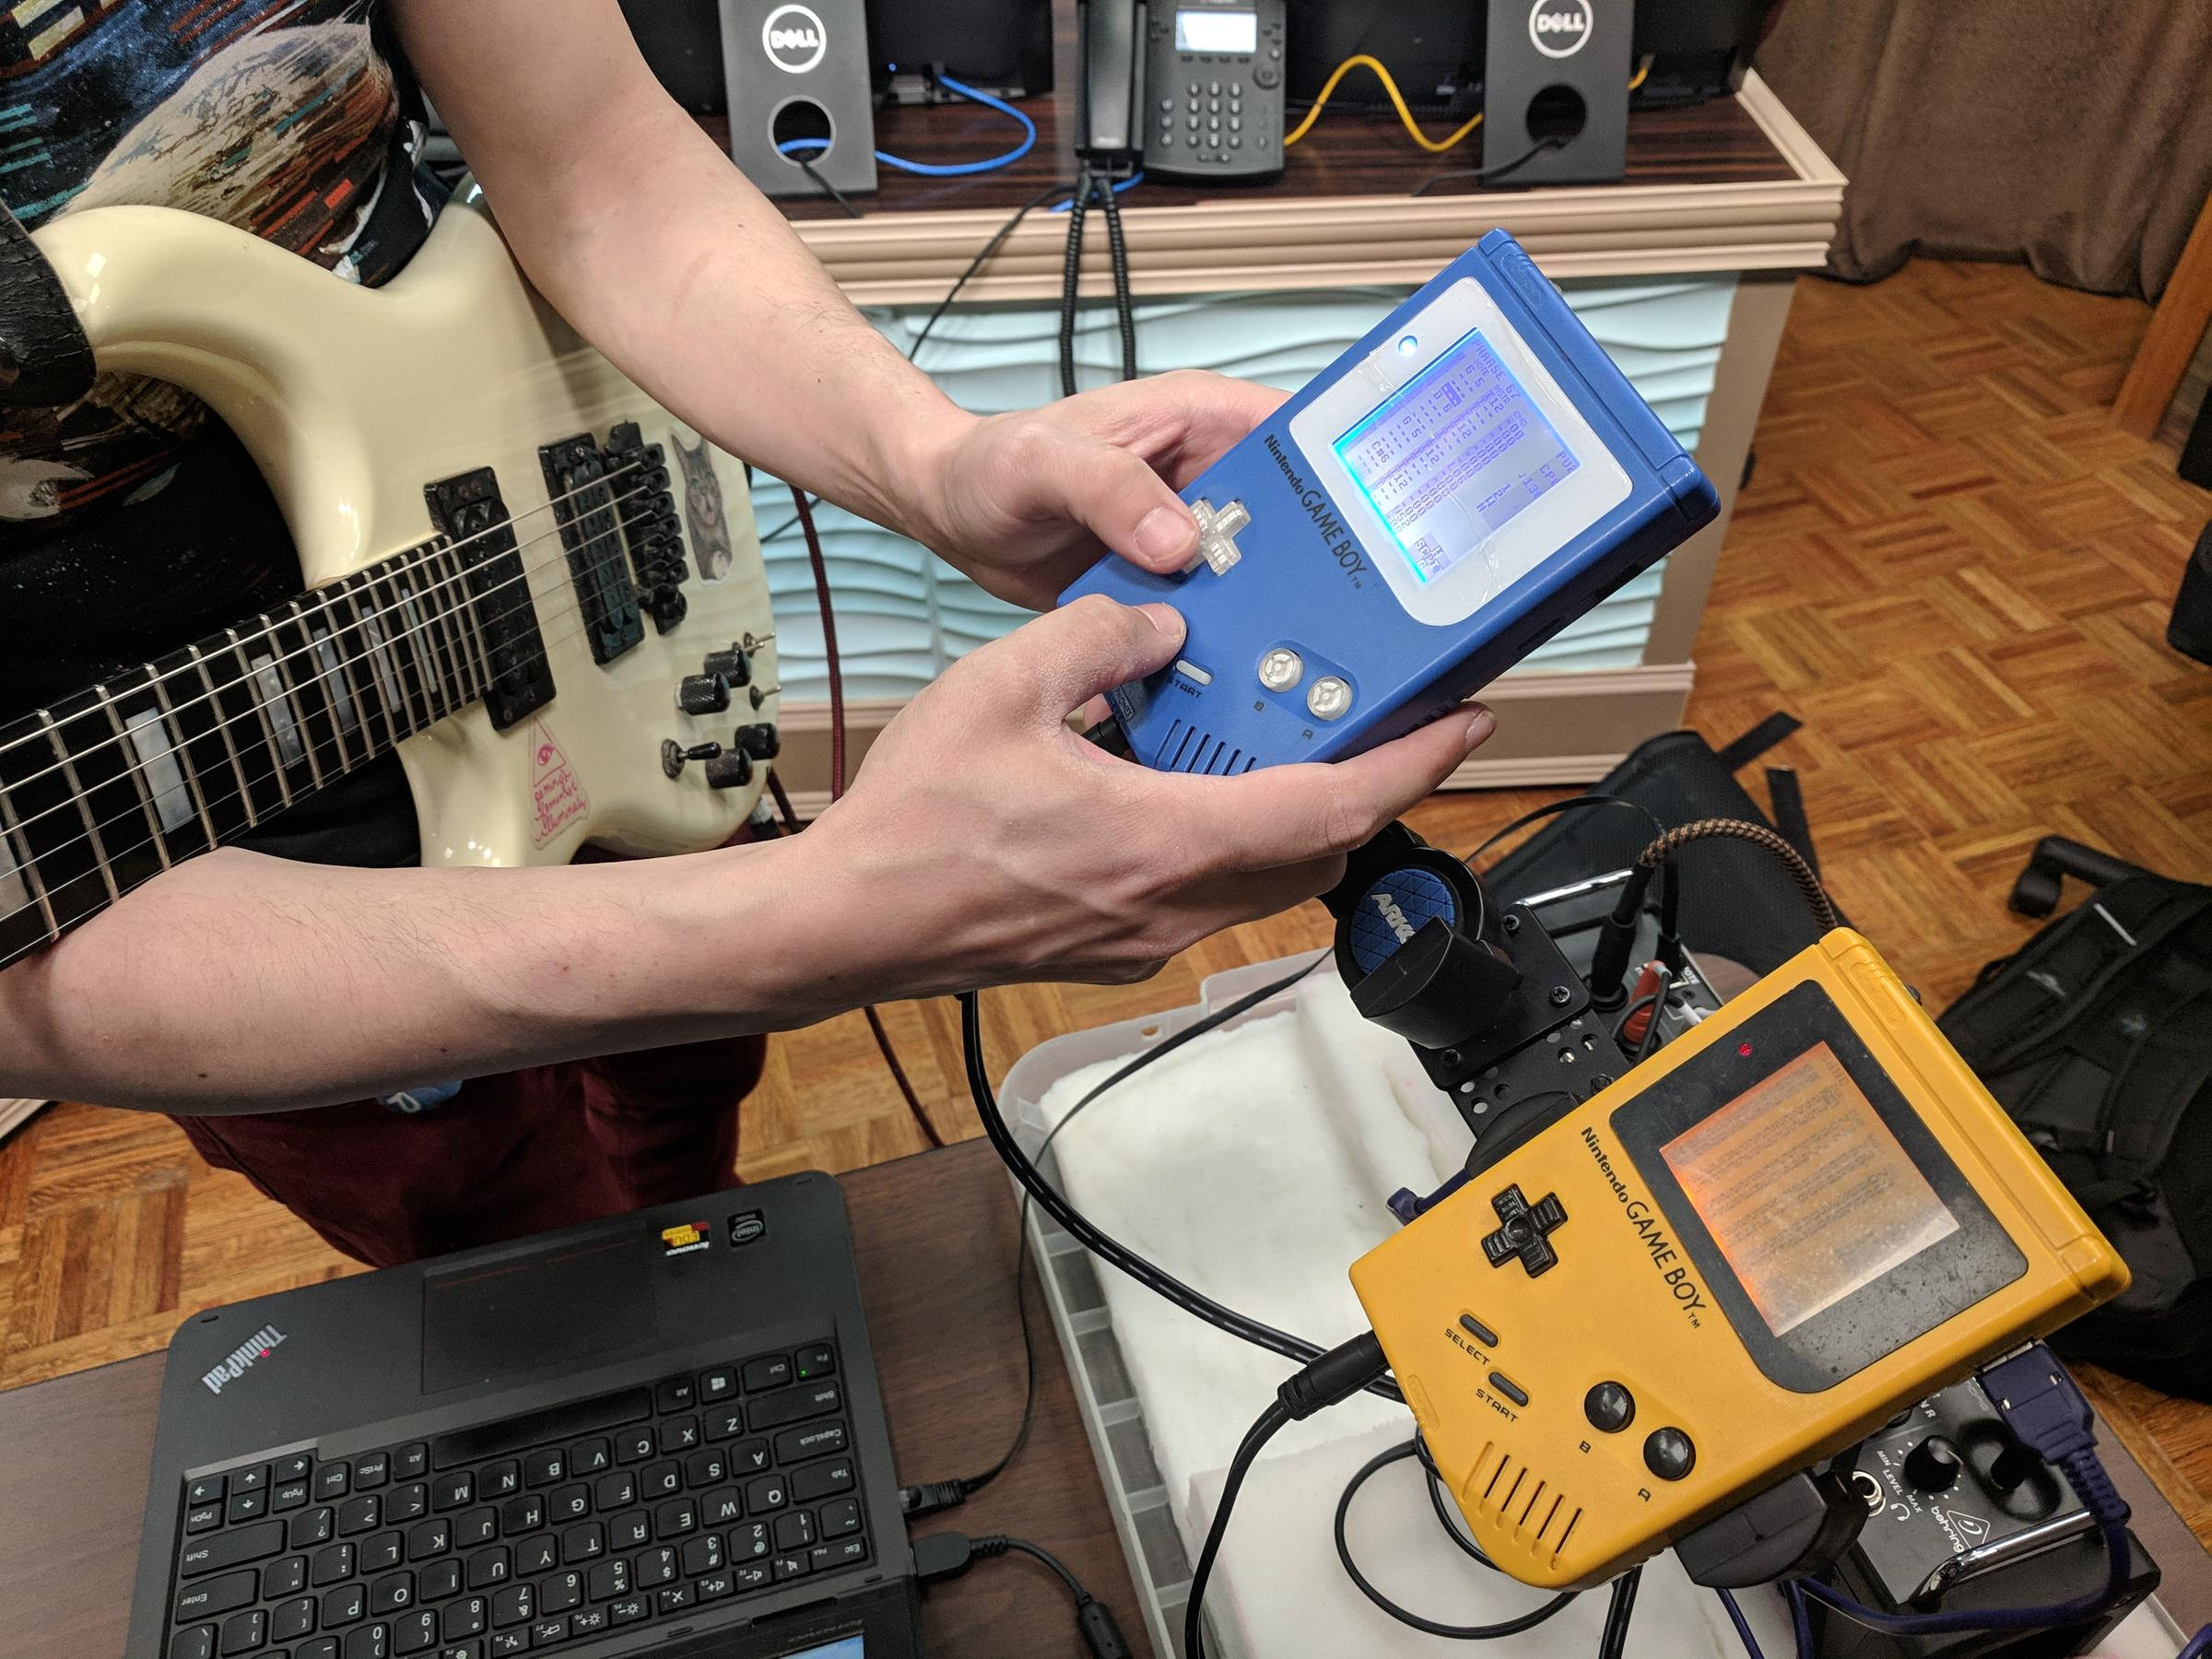 Armed with Game Boys and a guitar, chiptune artist Danimal